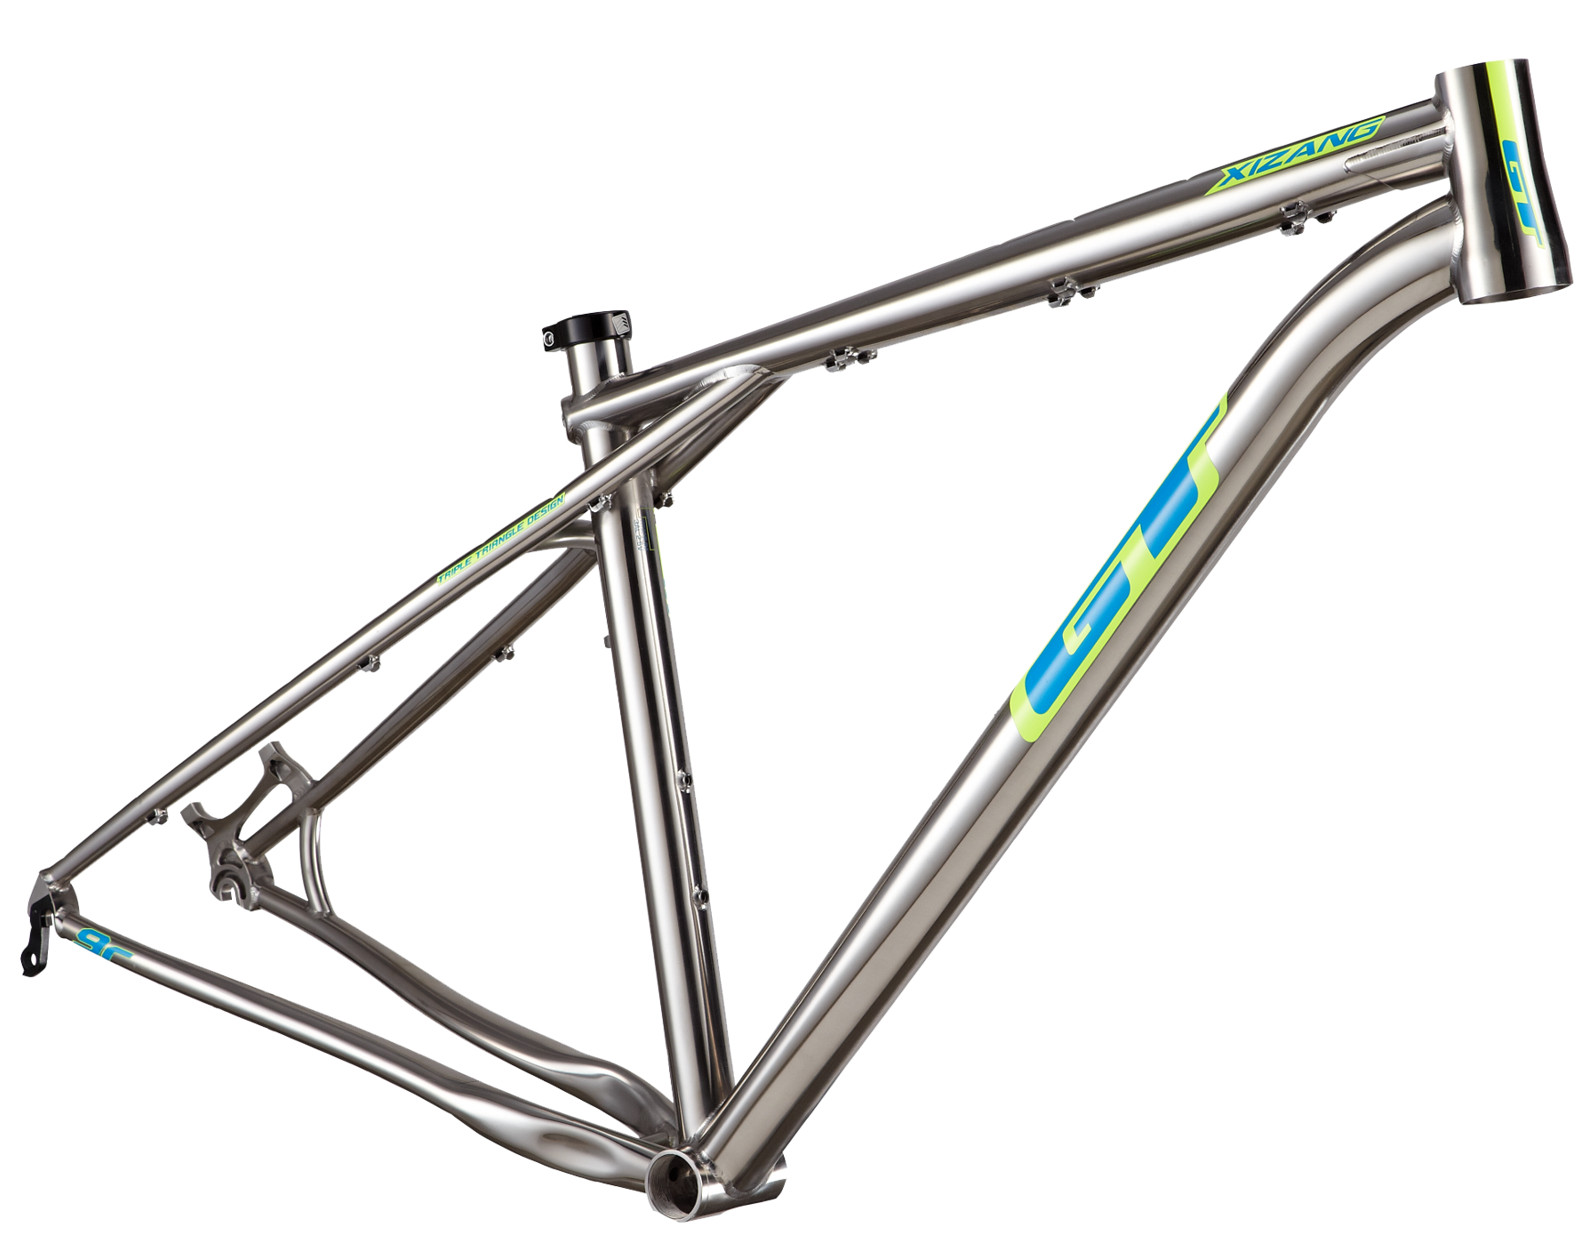 GT Xizang 9R Frame - Reviews, Comparisons, Specs - Mountain Bike ...